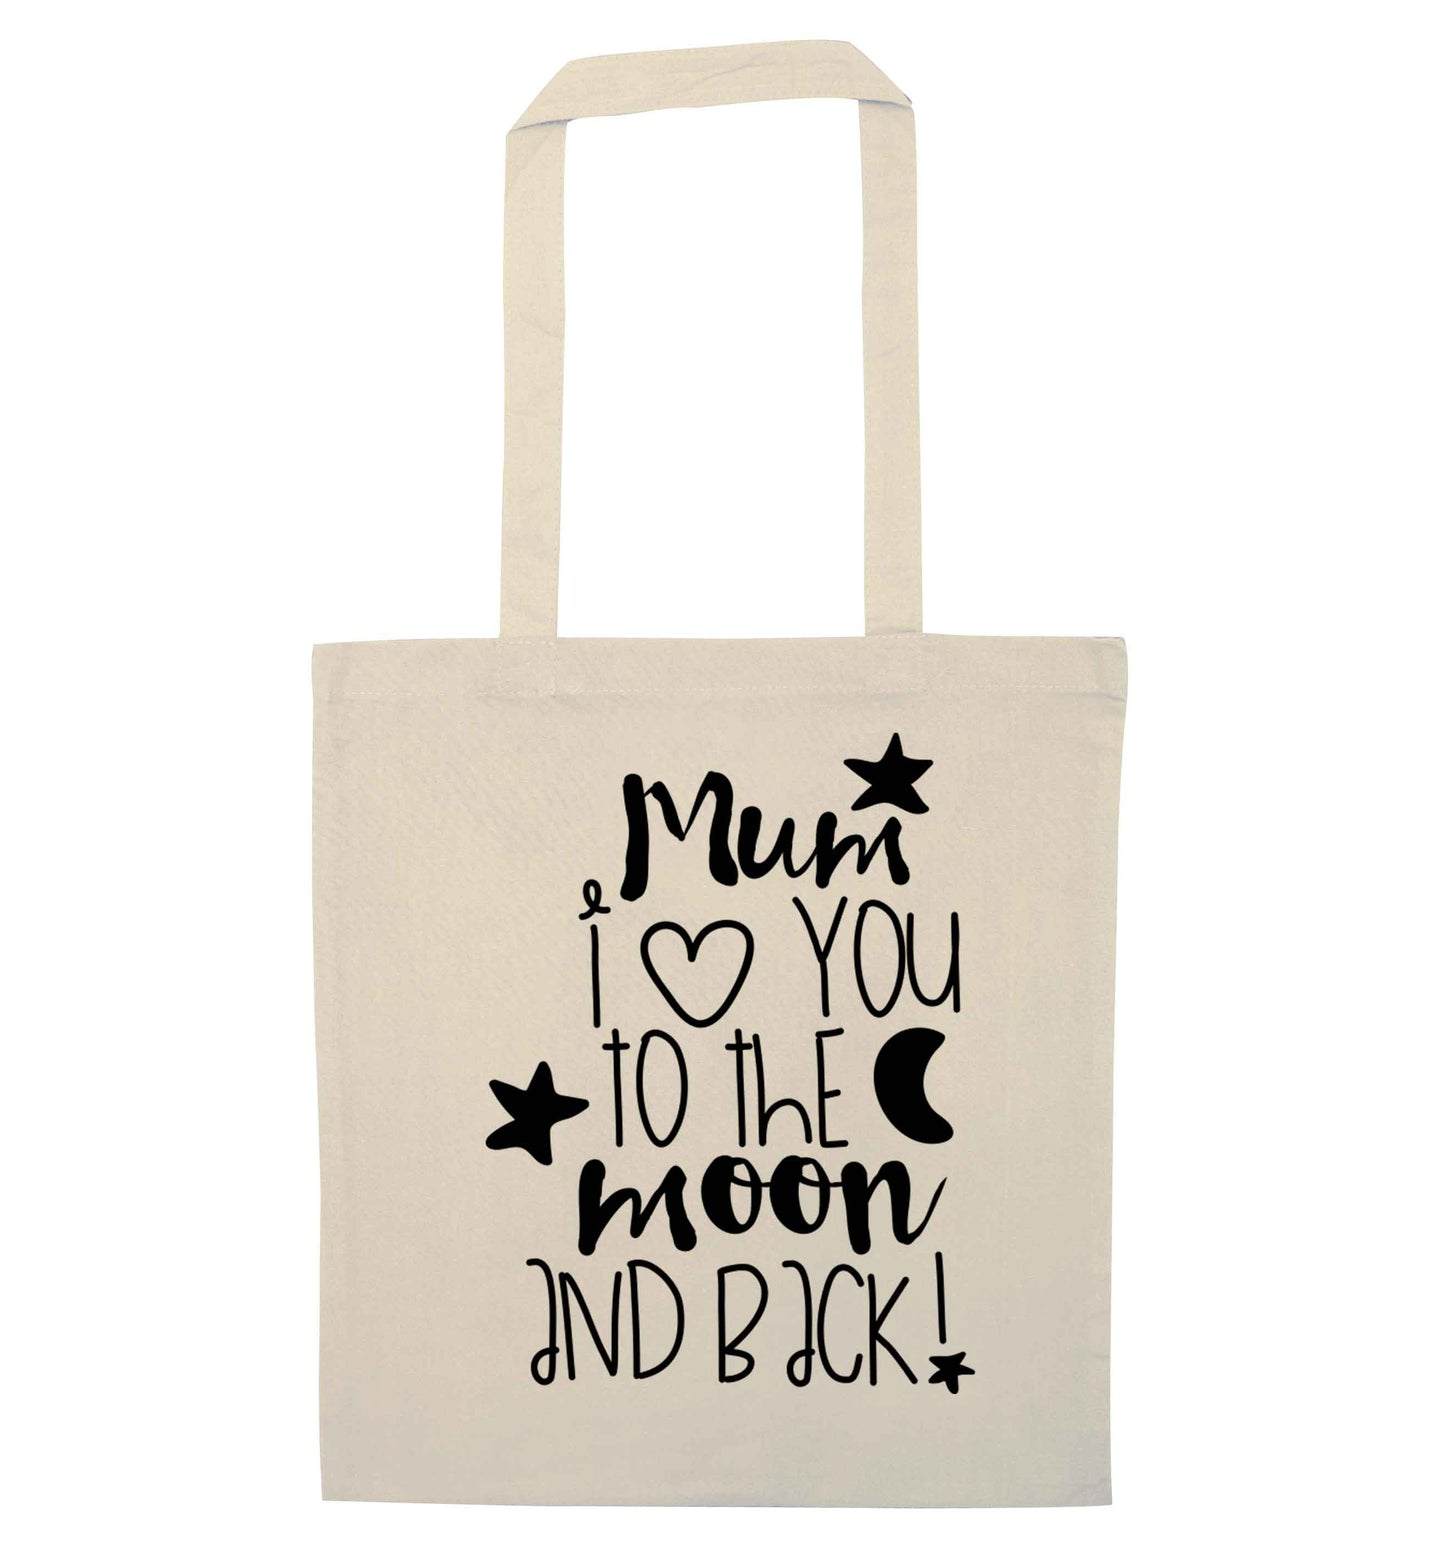 Mum I love you to the moon and back natural tote bag